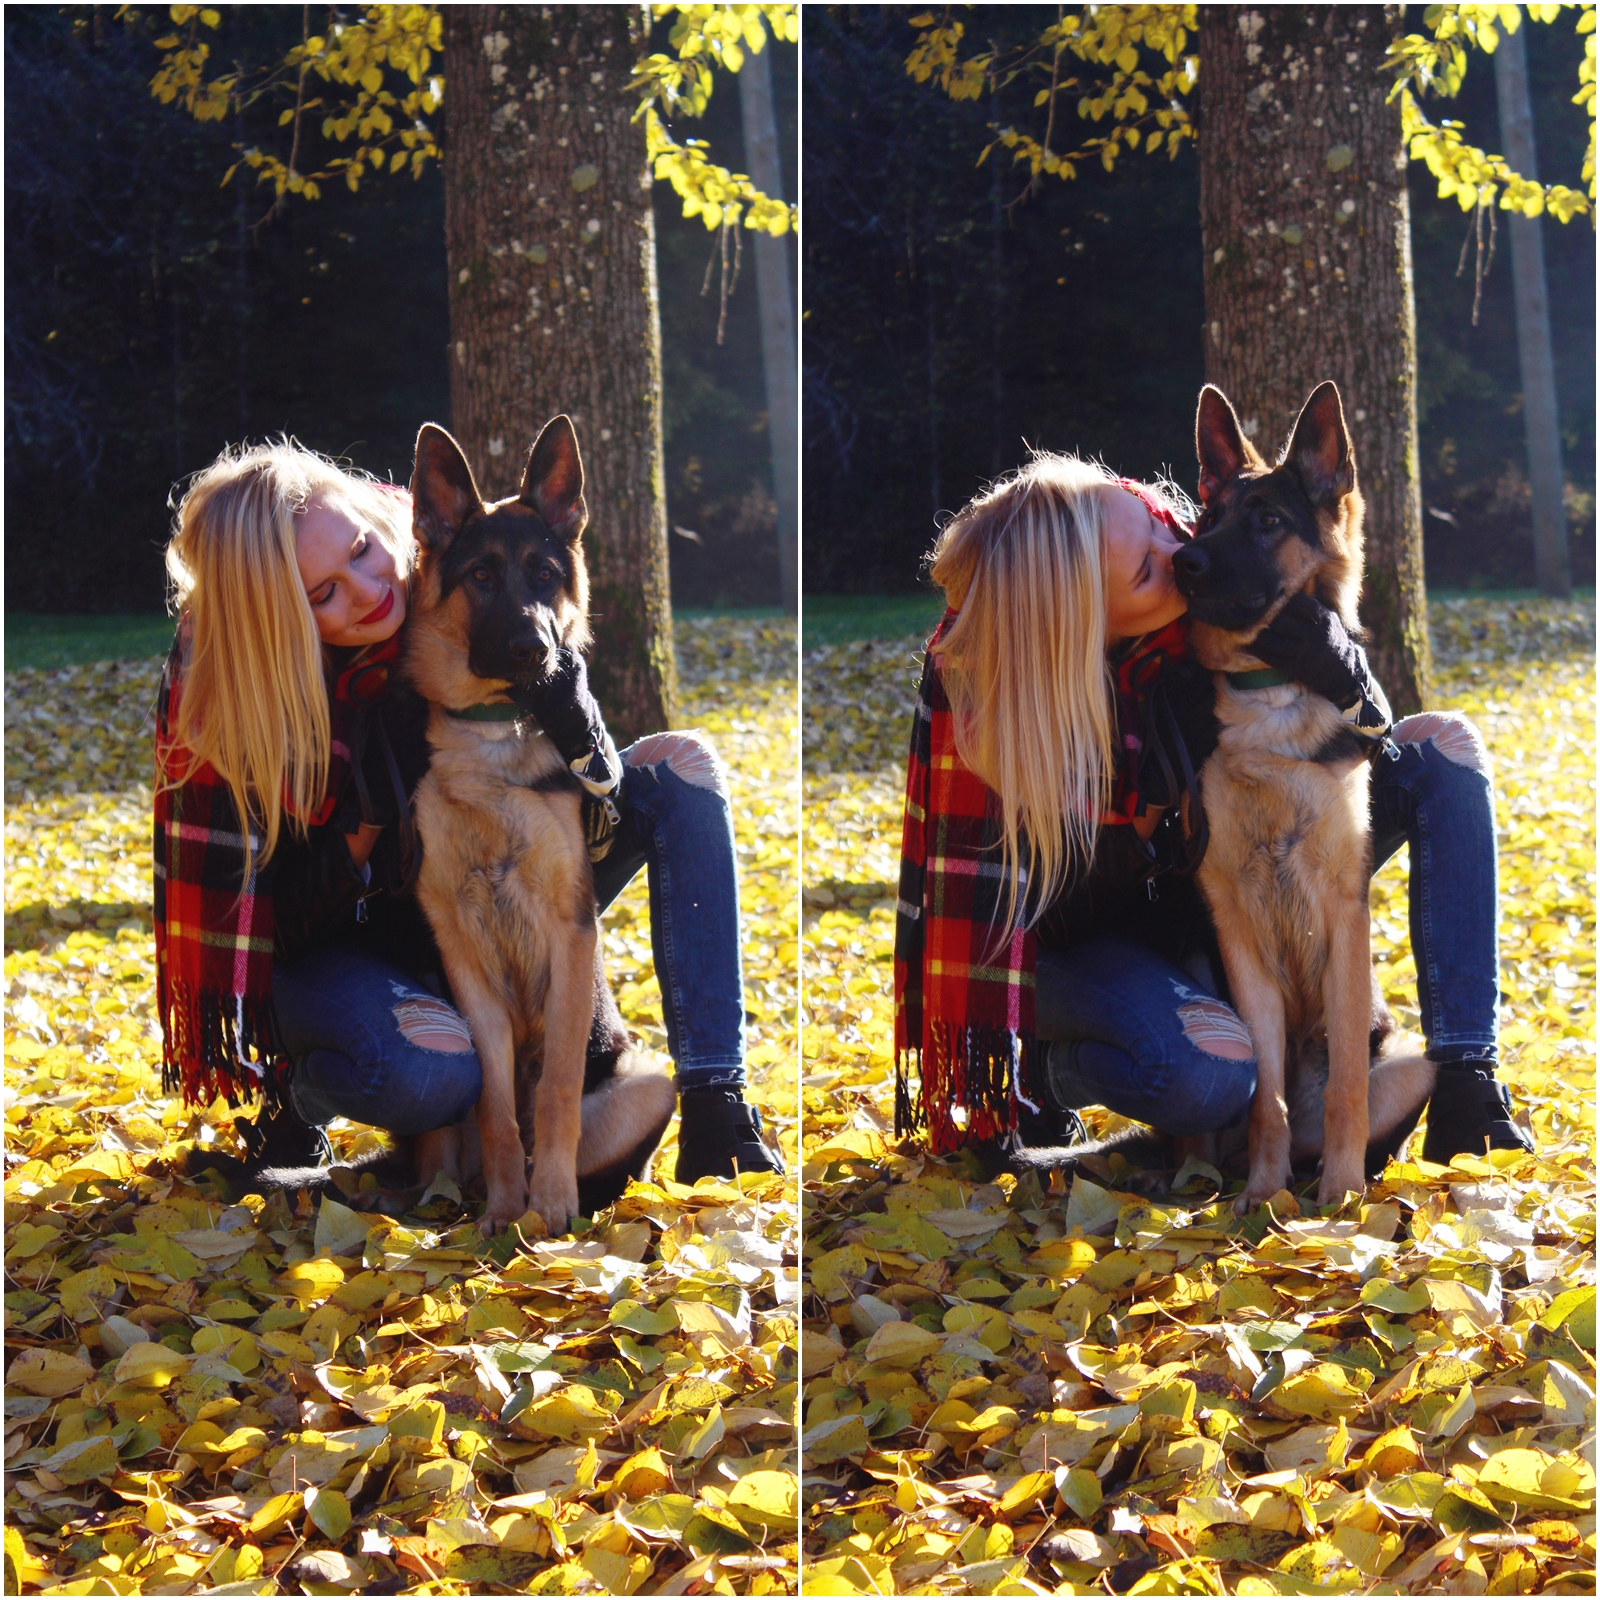 latvian fashion blogger and her cute puppy